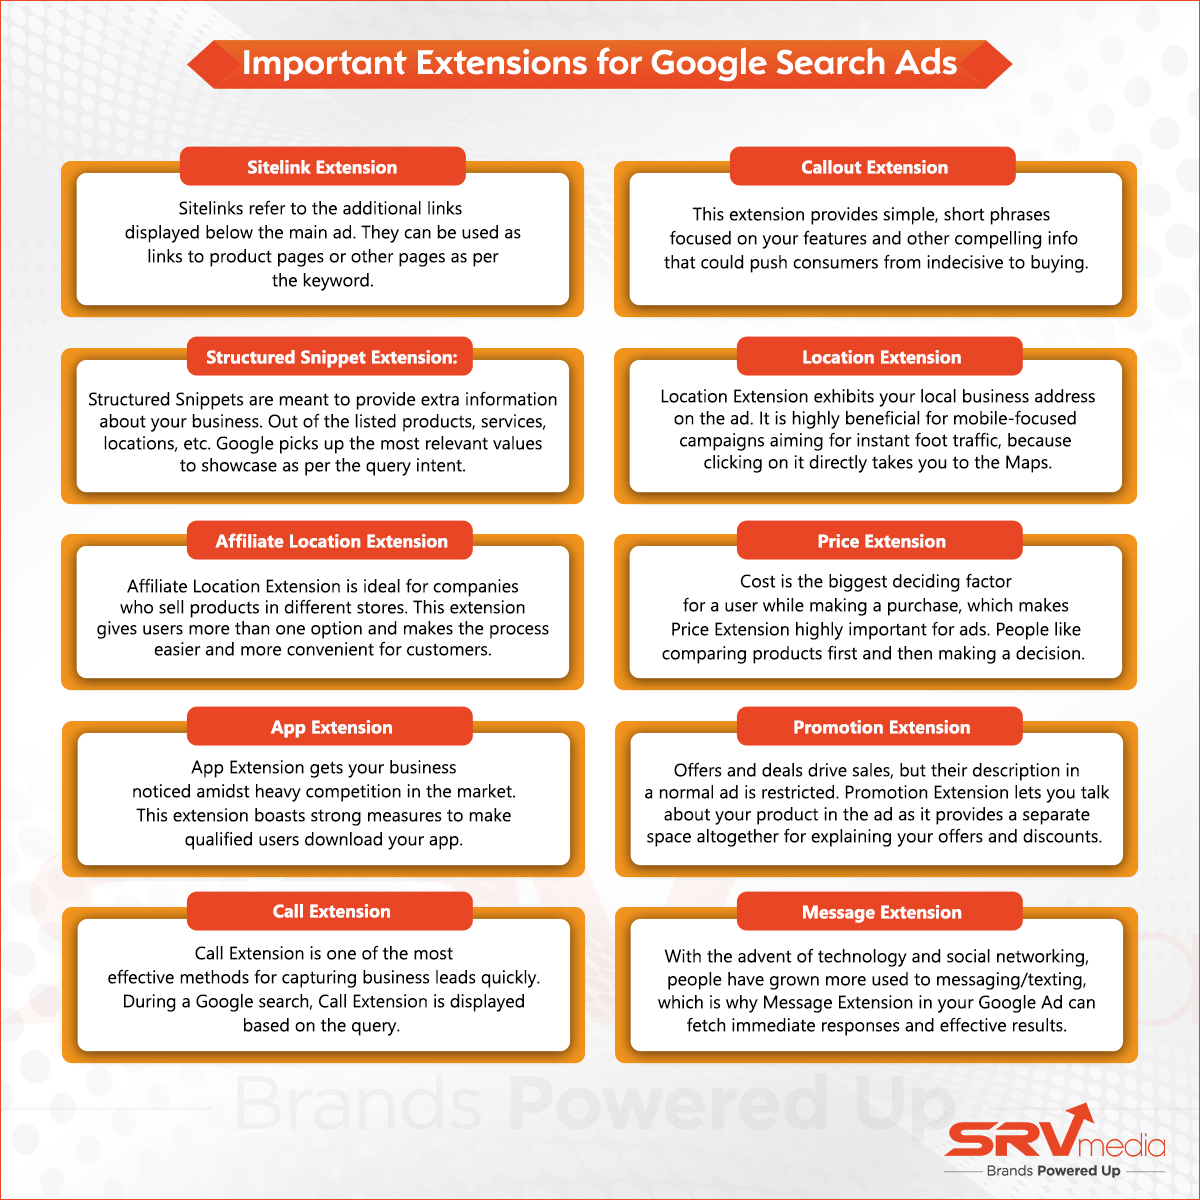 Ad Extensions for Google Search Ads